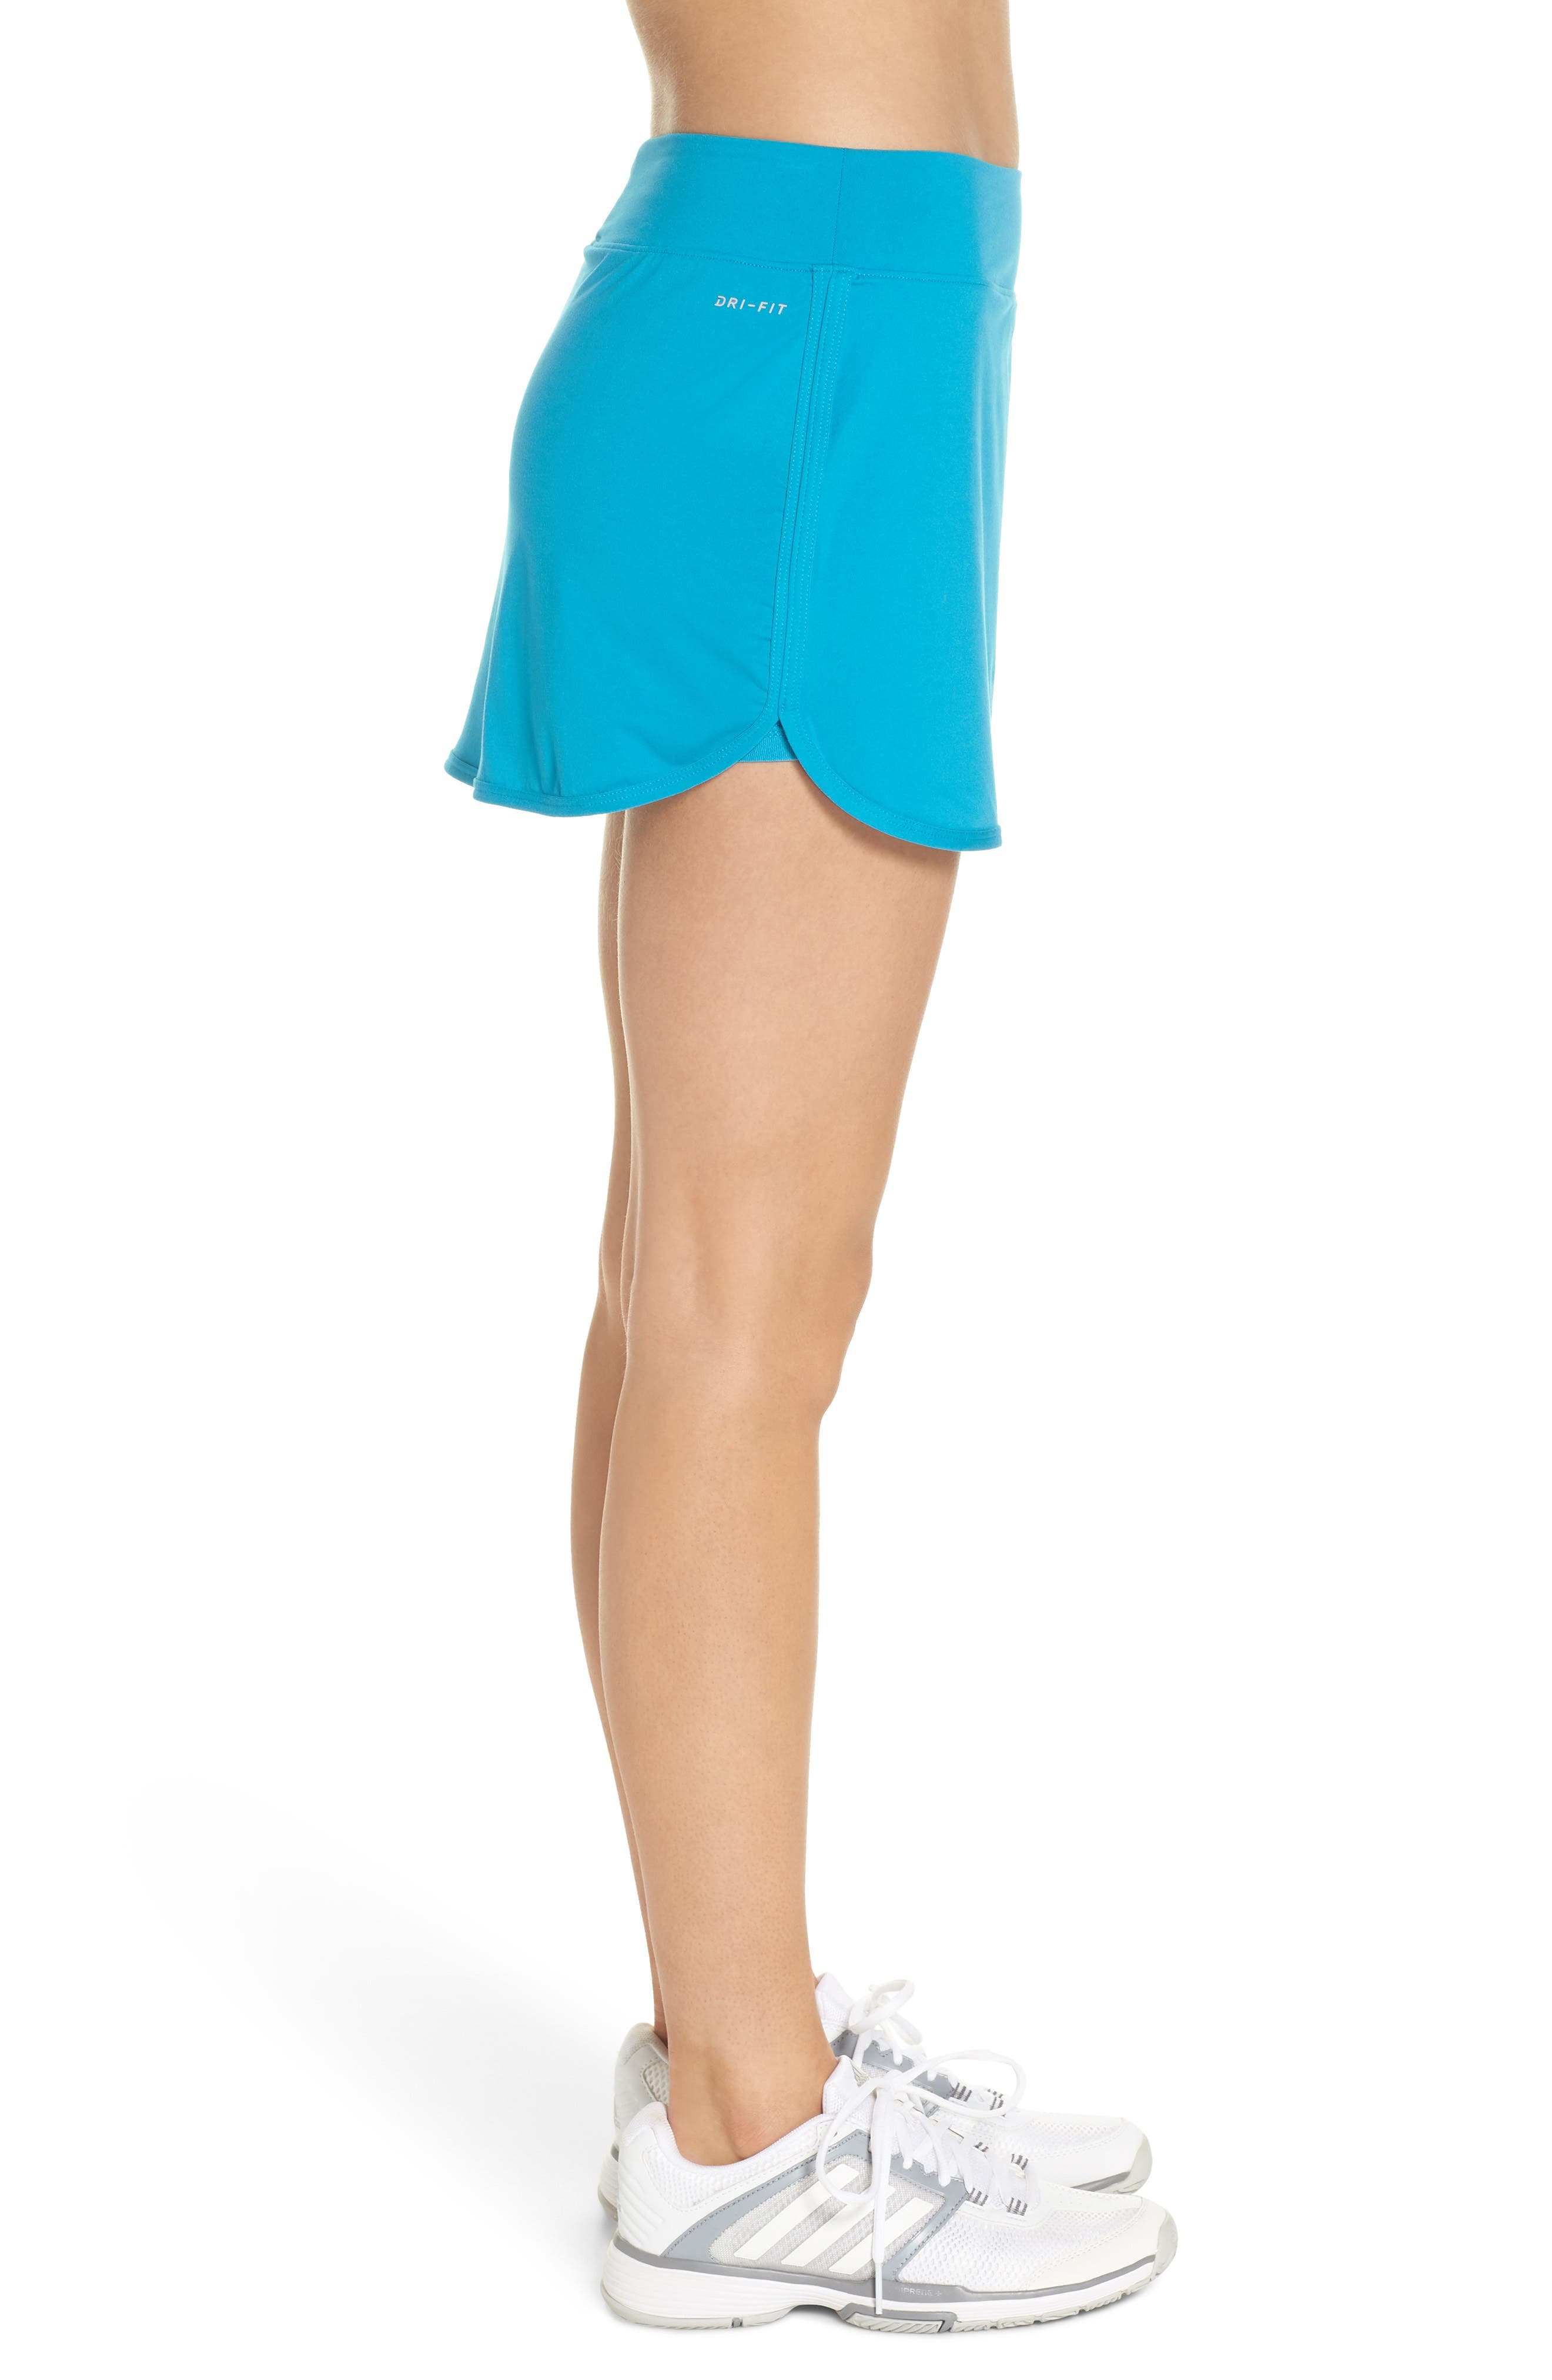 'Pure' Dri-FIT Tennis Skirt,                             Alternate thumbnail 3, color,                             Neo Turquoise/ White